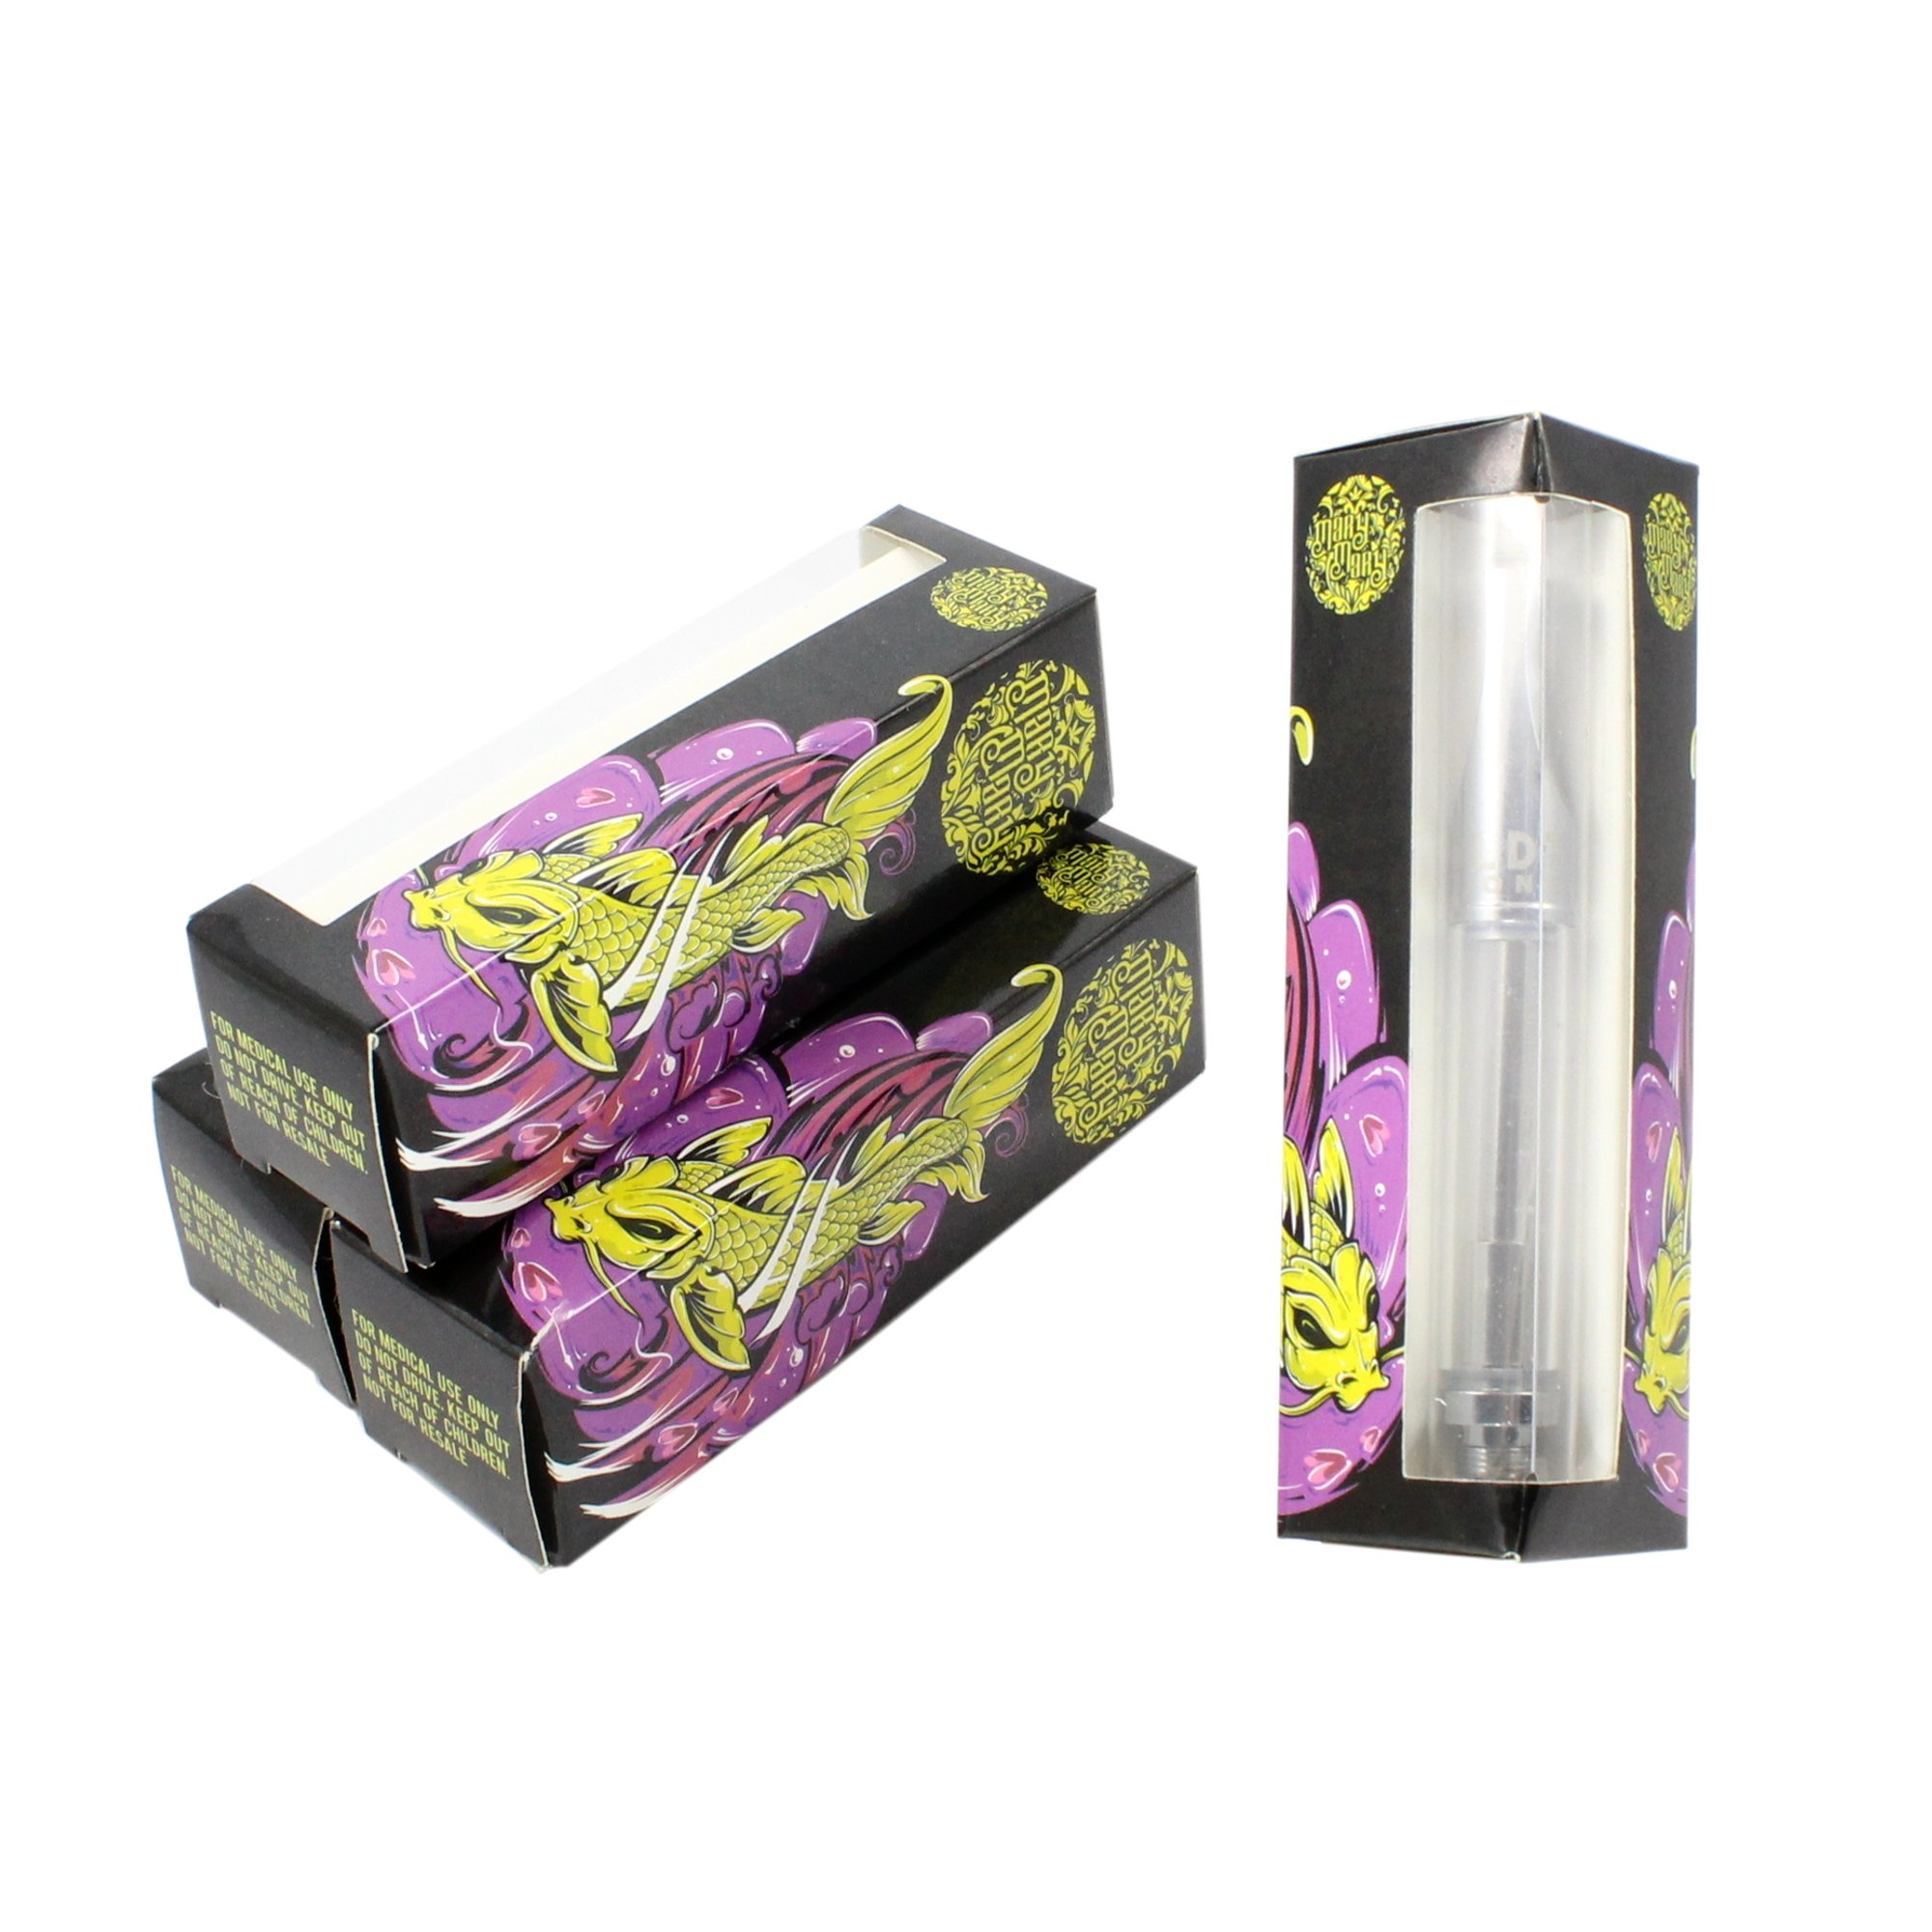 Mary Mary Koi Fish Empty Distillate Packaging Slim 1.0 & 0.5 ML Boxes by Shatter Labels VB-038 (100)